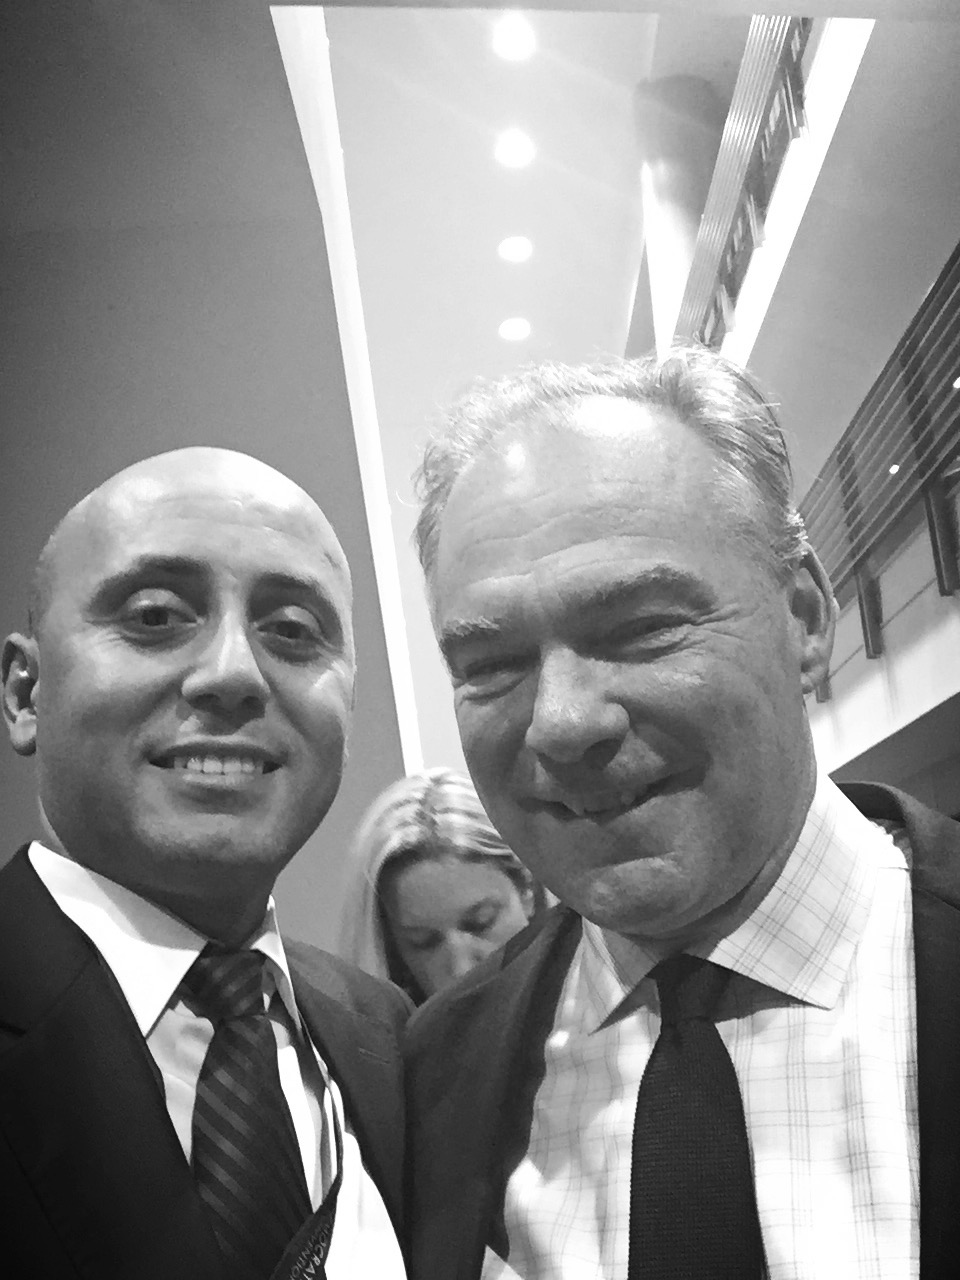 Bilal Eksili with Senator Tim Kaine